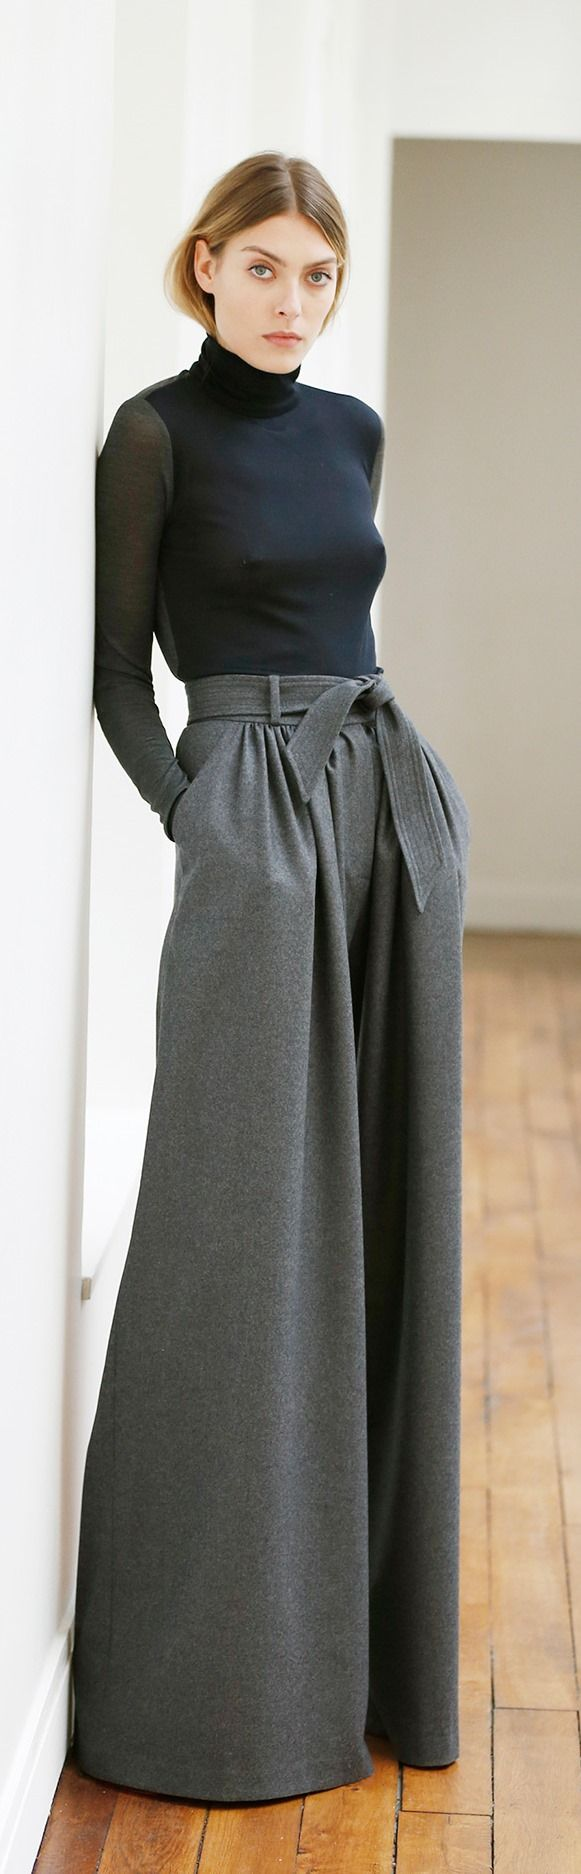 Grey wide leg trousers by Martin Grant, Pre-Fall 2015